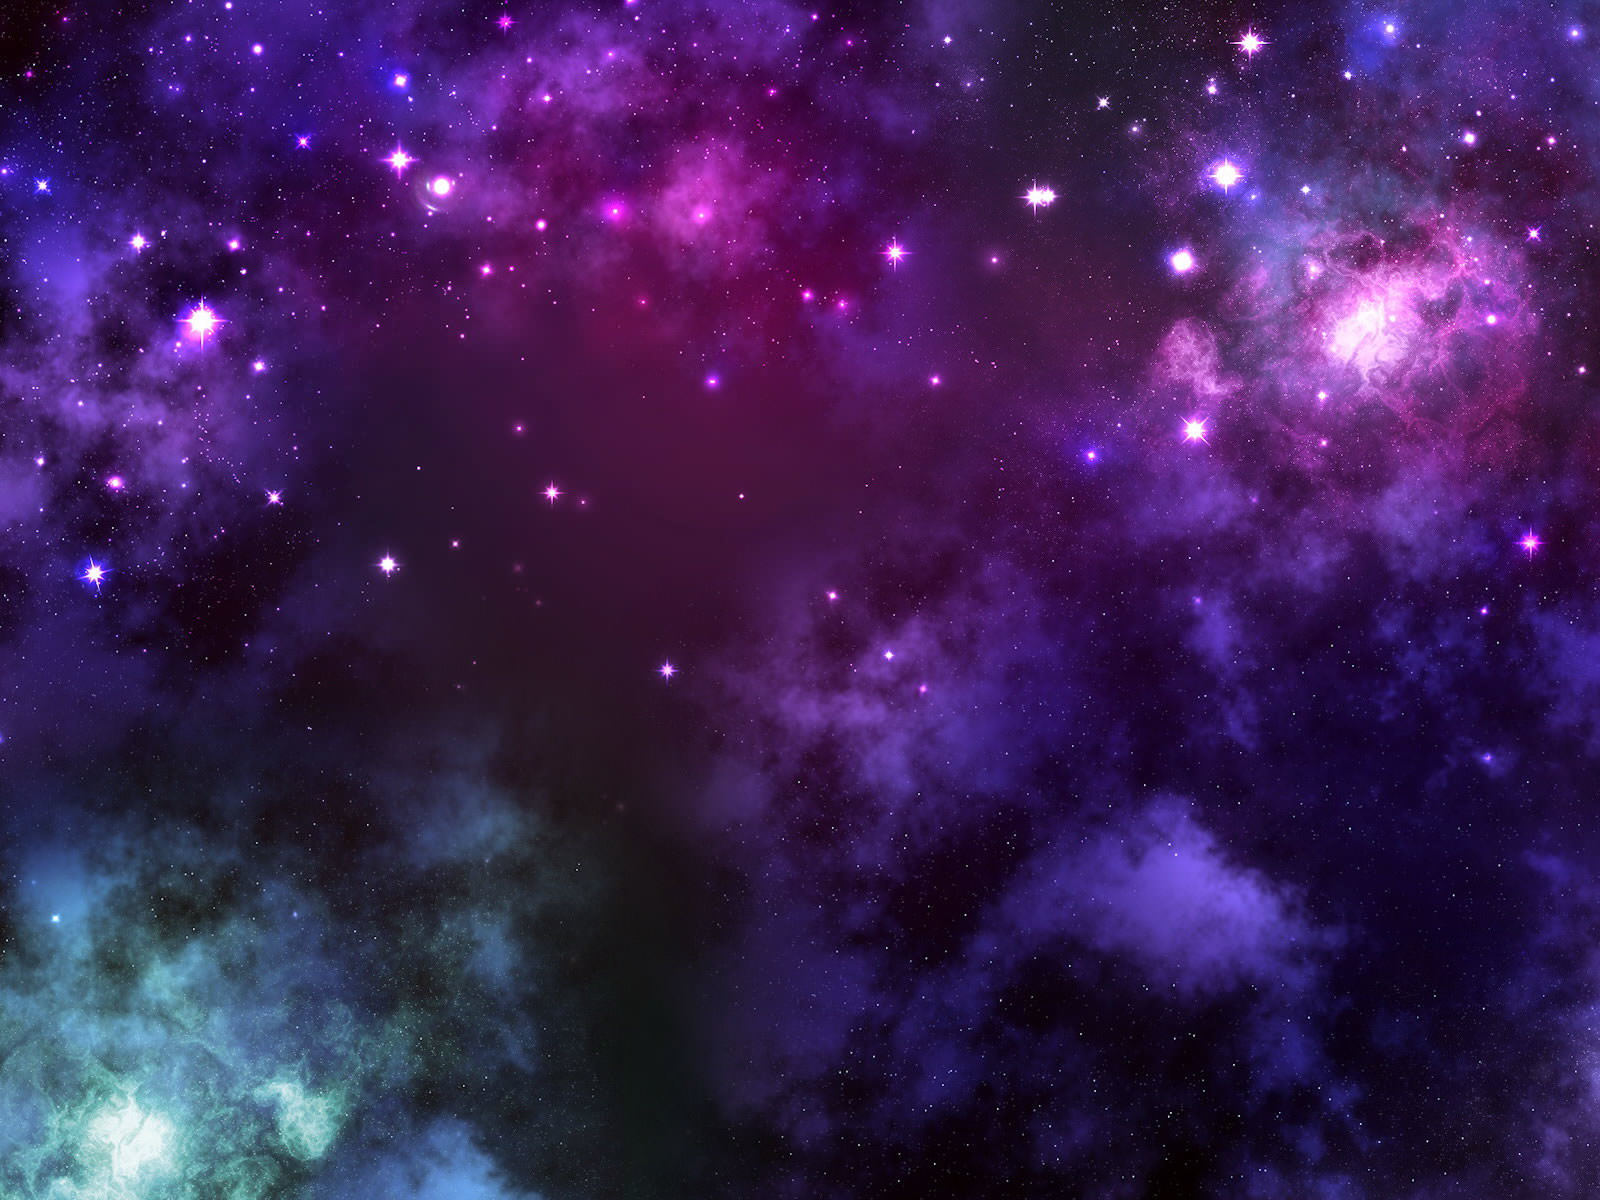 Outer space hd wallpaper space wallpaper for Space and outer space